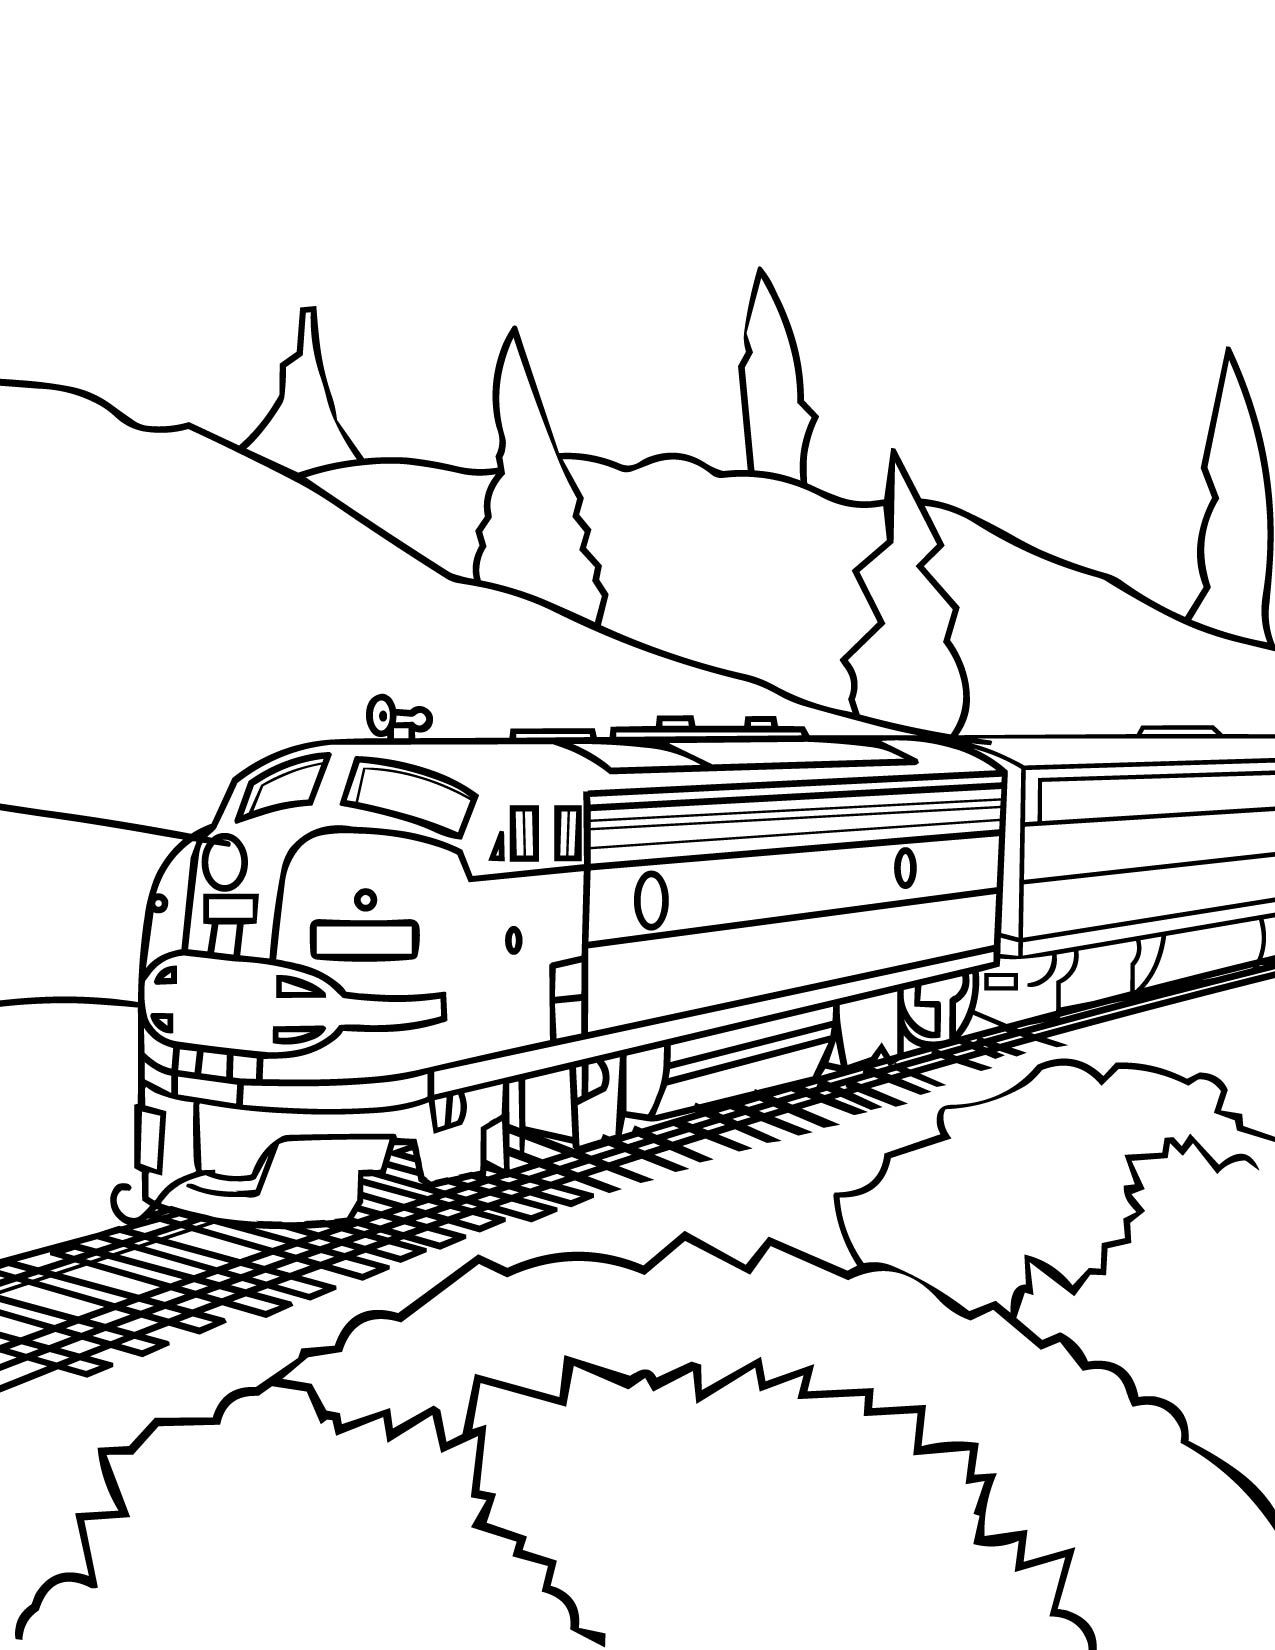 Coloring pages trains for kids - Train Coloring Pages Free Printable Enjoy Coloring